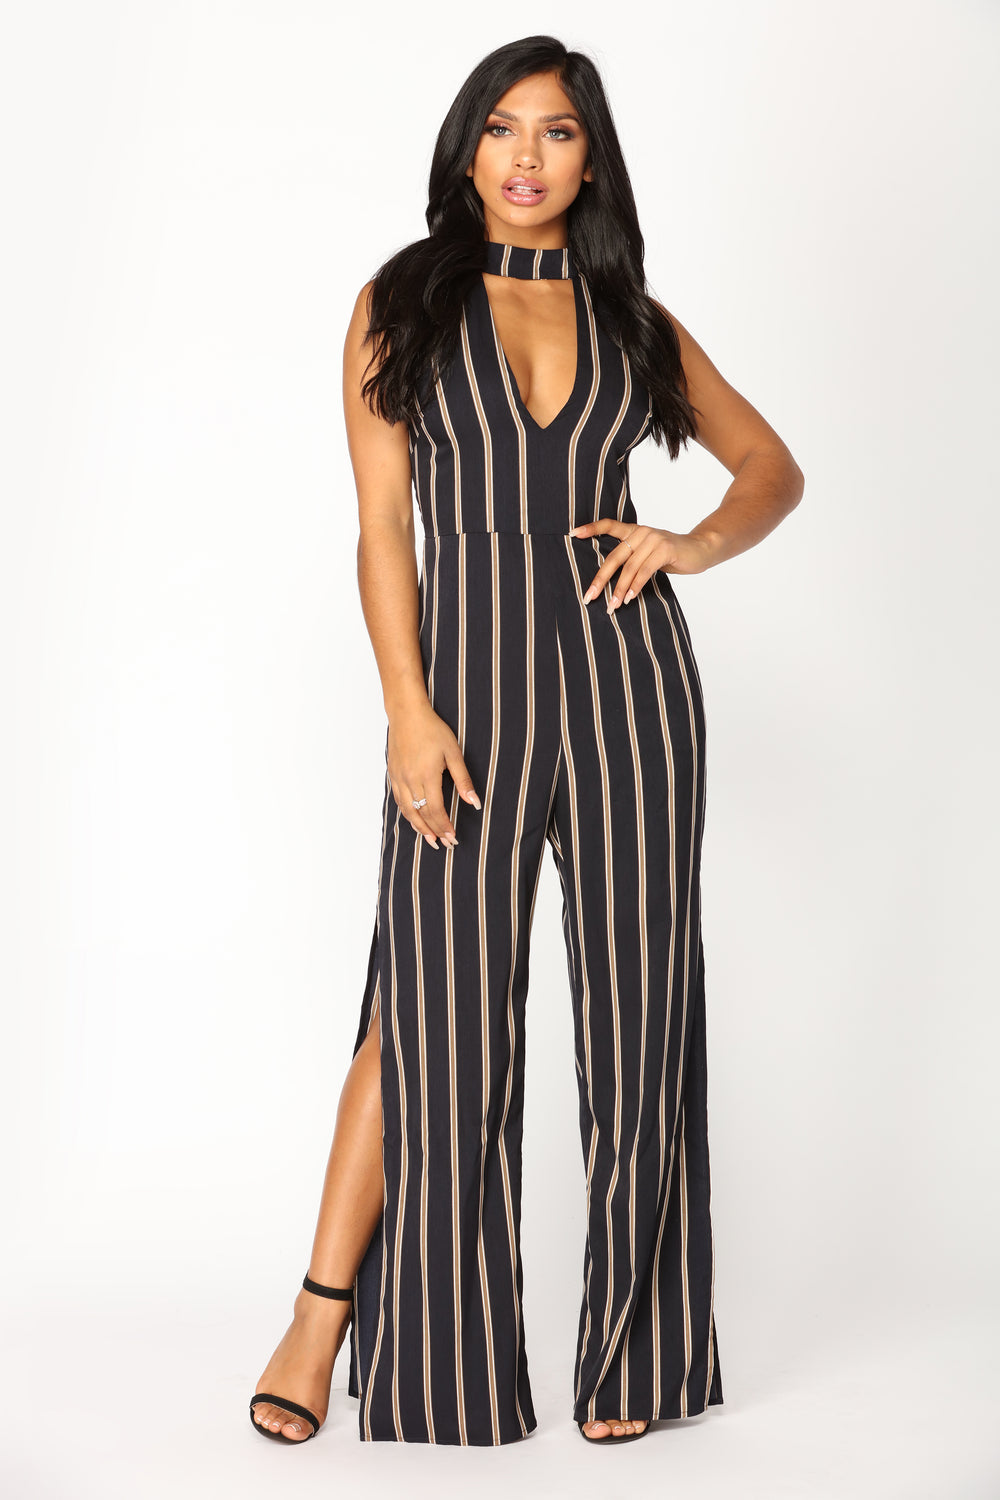 Kudos Striped Jumpsuit - Navy